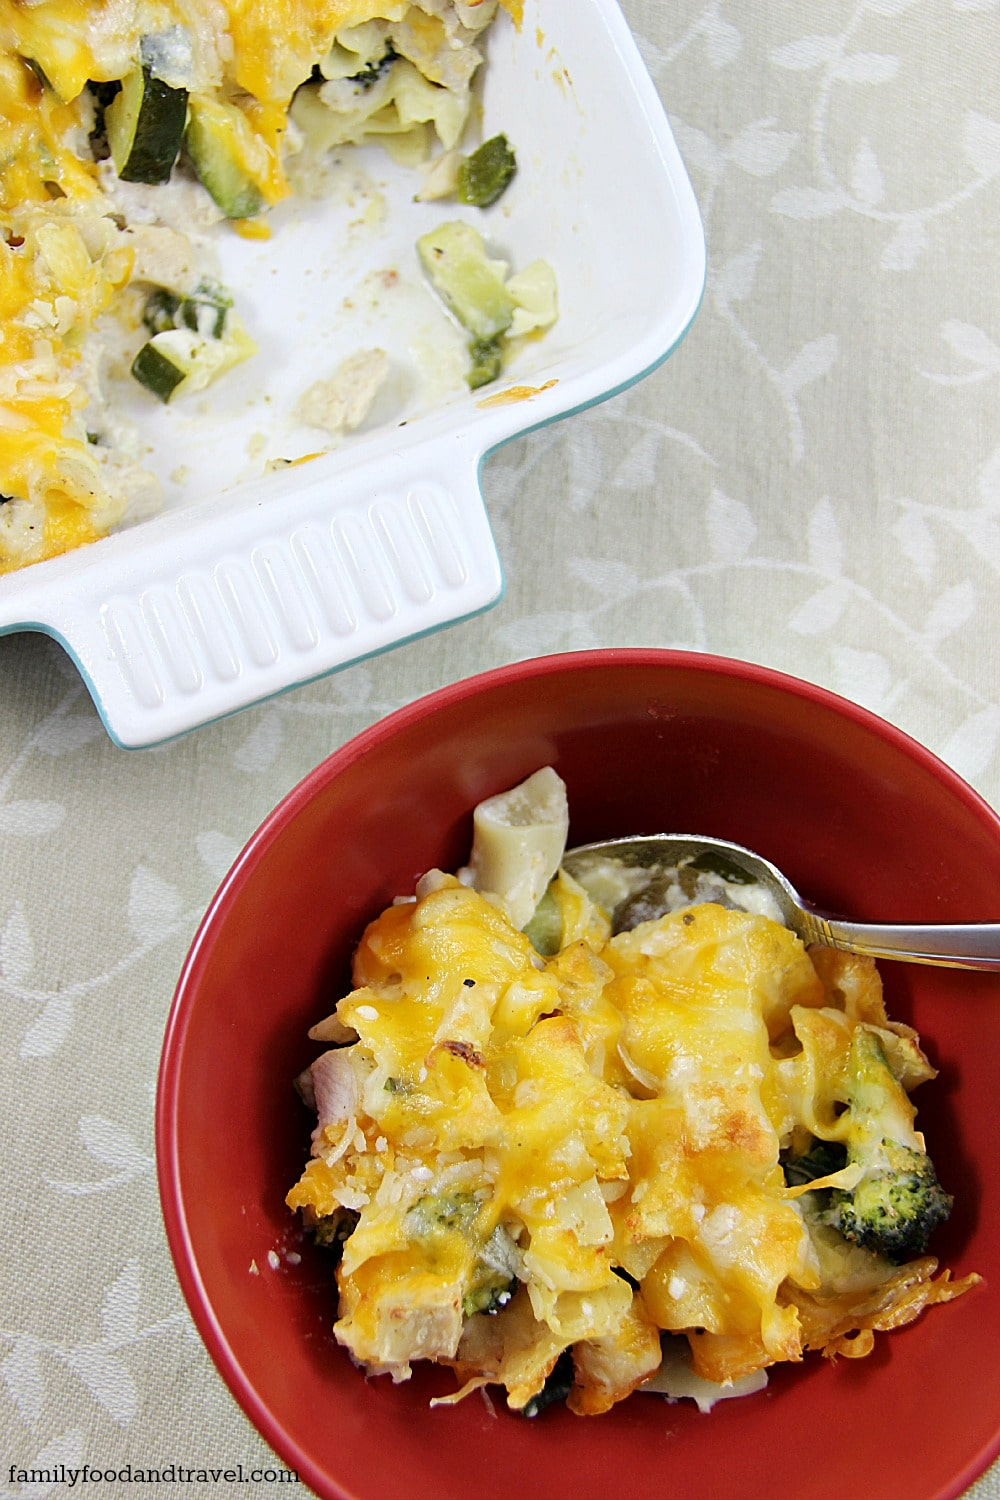 Poblano Pepper Broccoli and Chicken Casserole